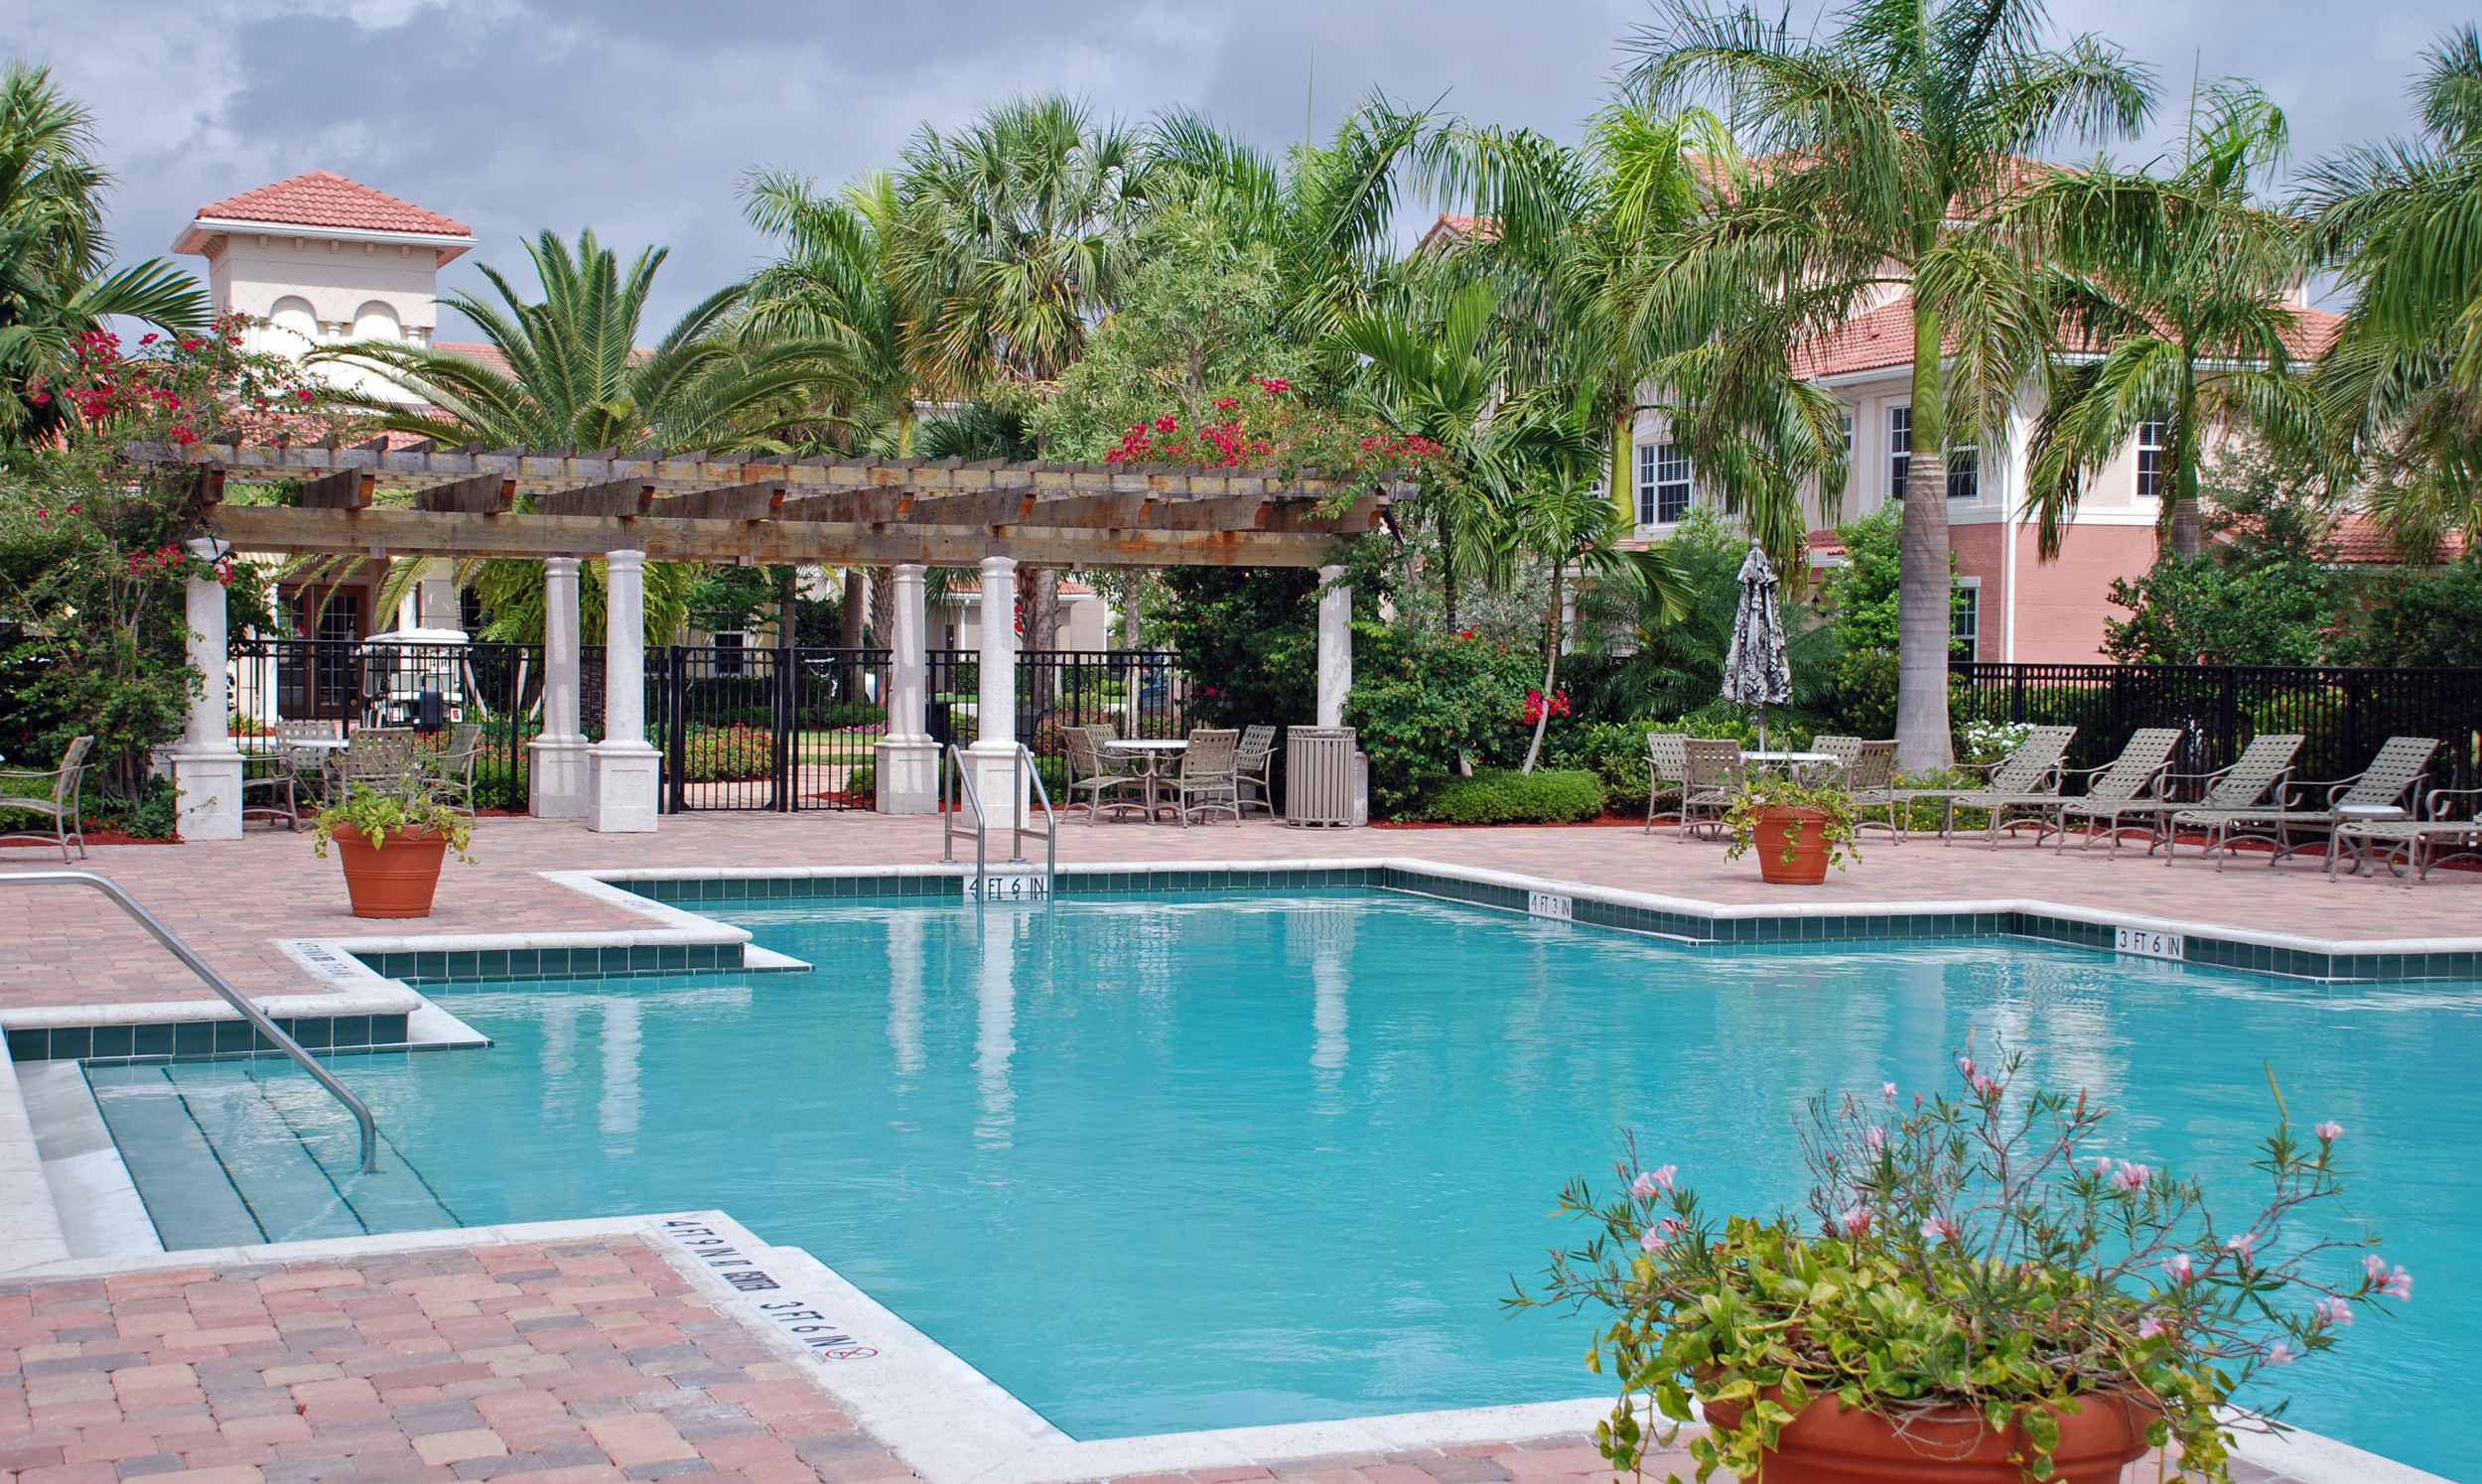 The Gables Floresta Jupiter Florida Clubhouse Community Pool.jpg